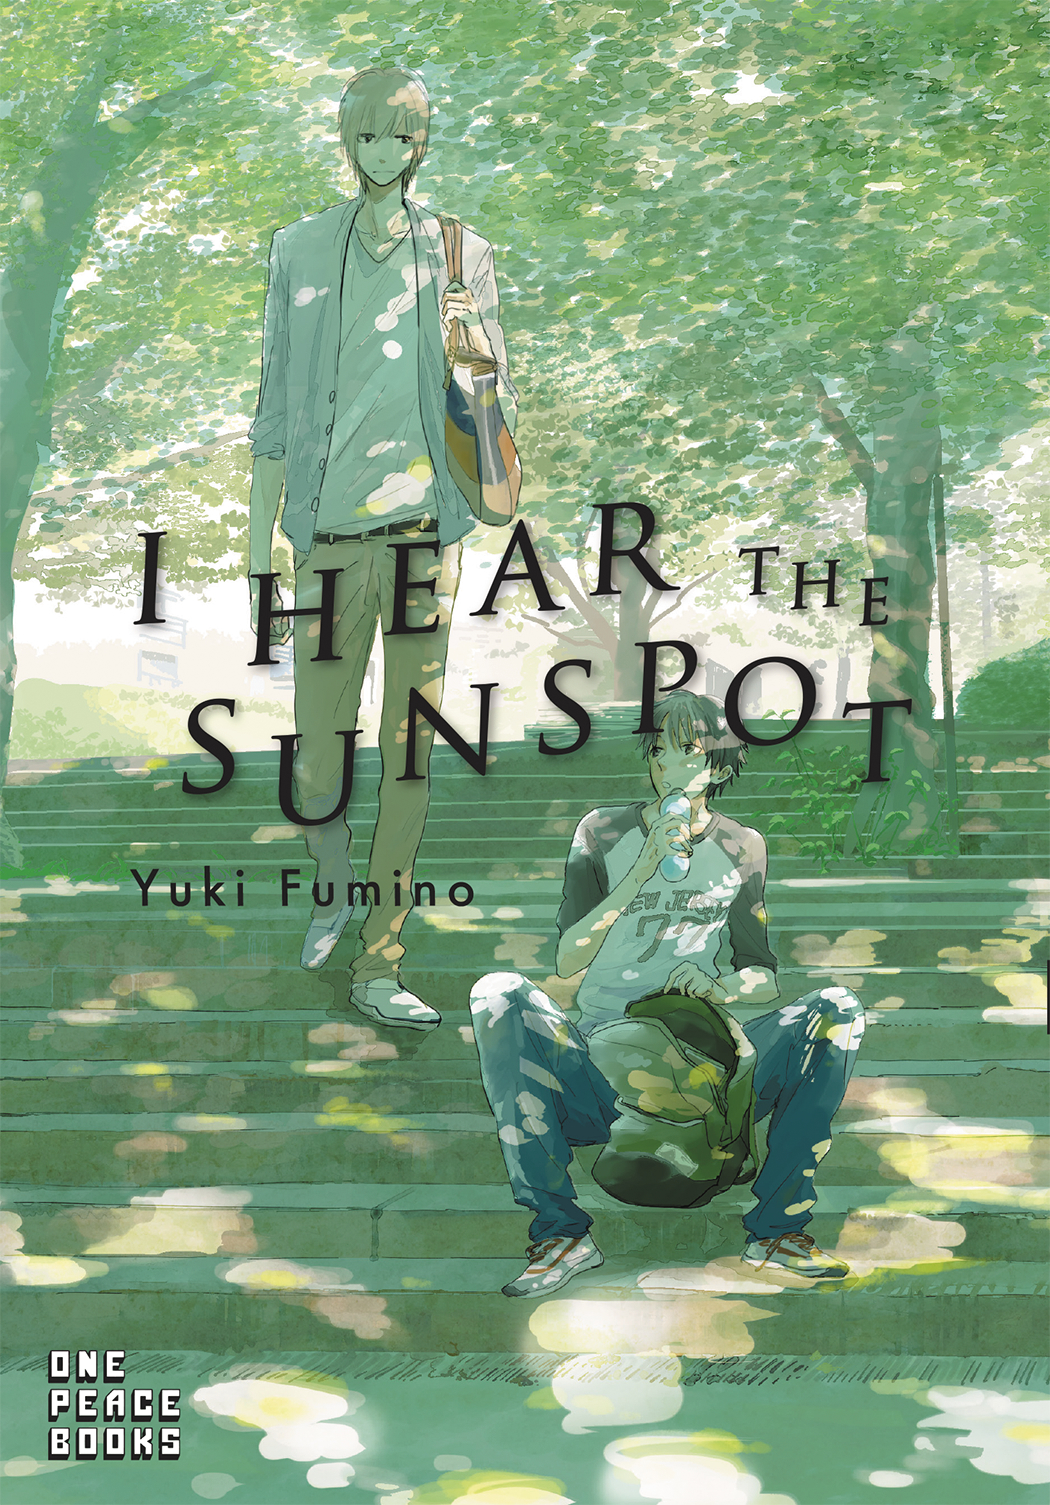 I HEAR THE SUNSPOT GN VOL 01 ORIGINAL VOLUME (JUN171829)